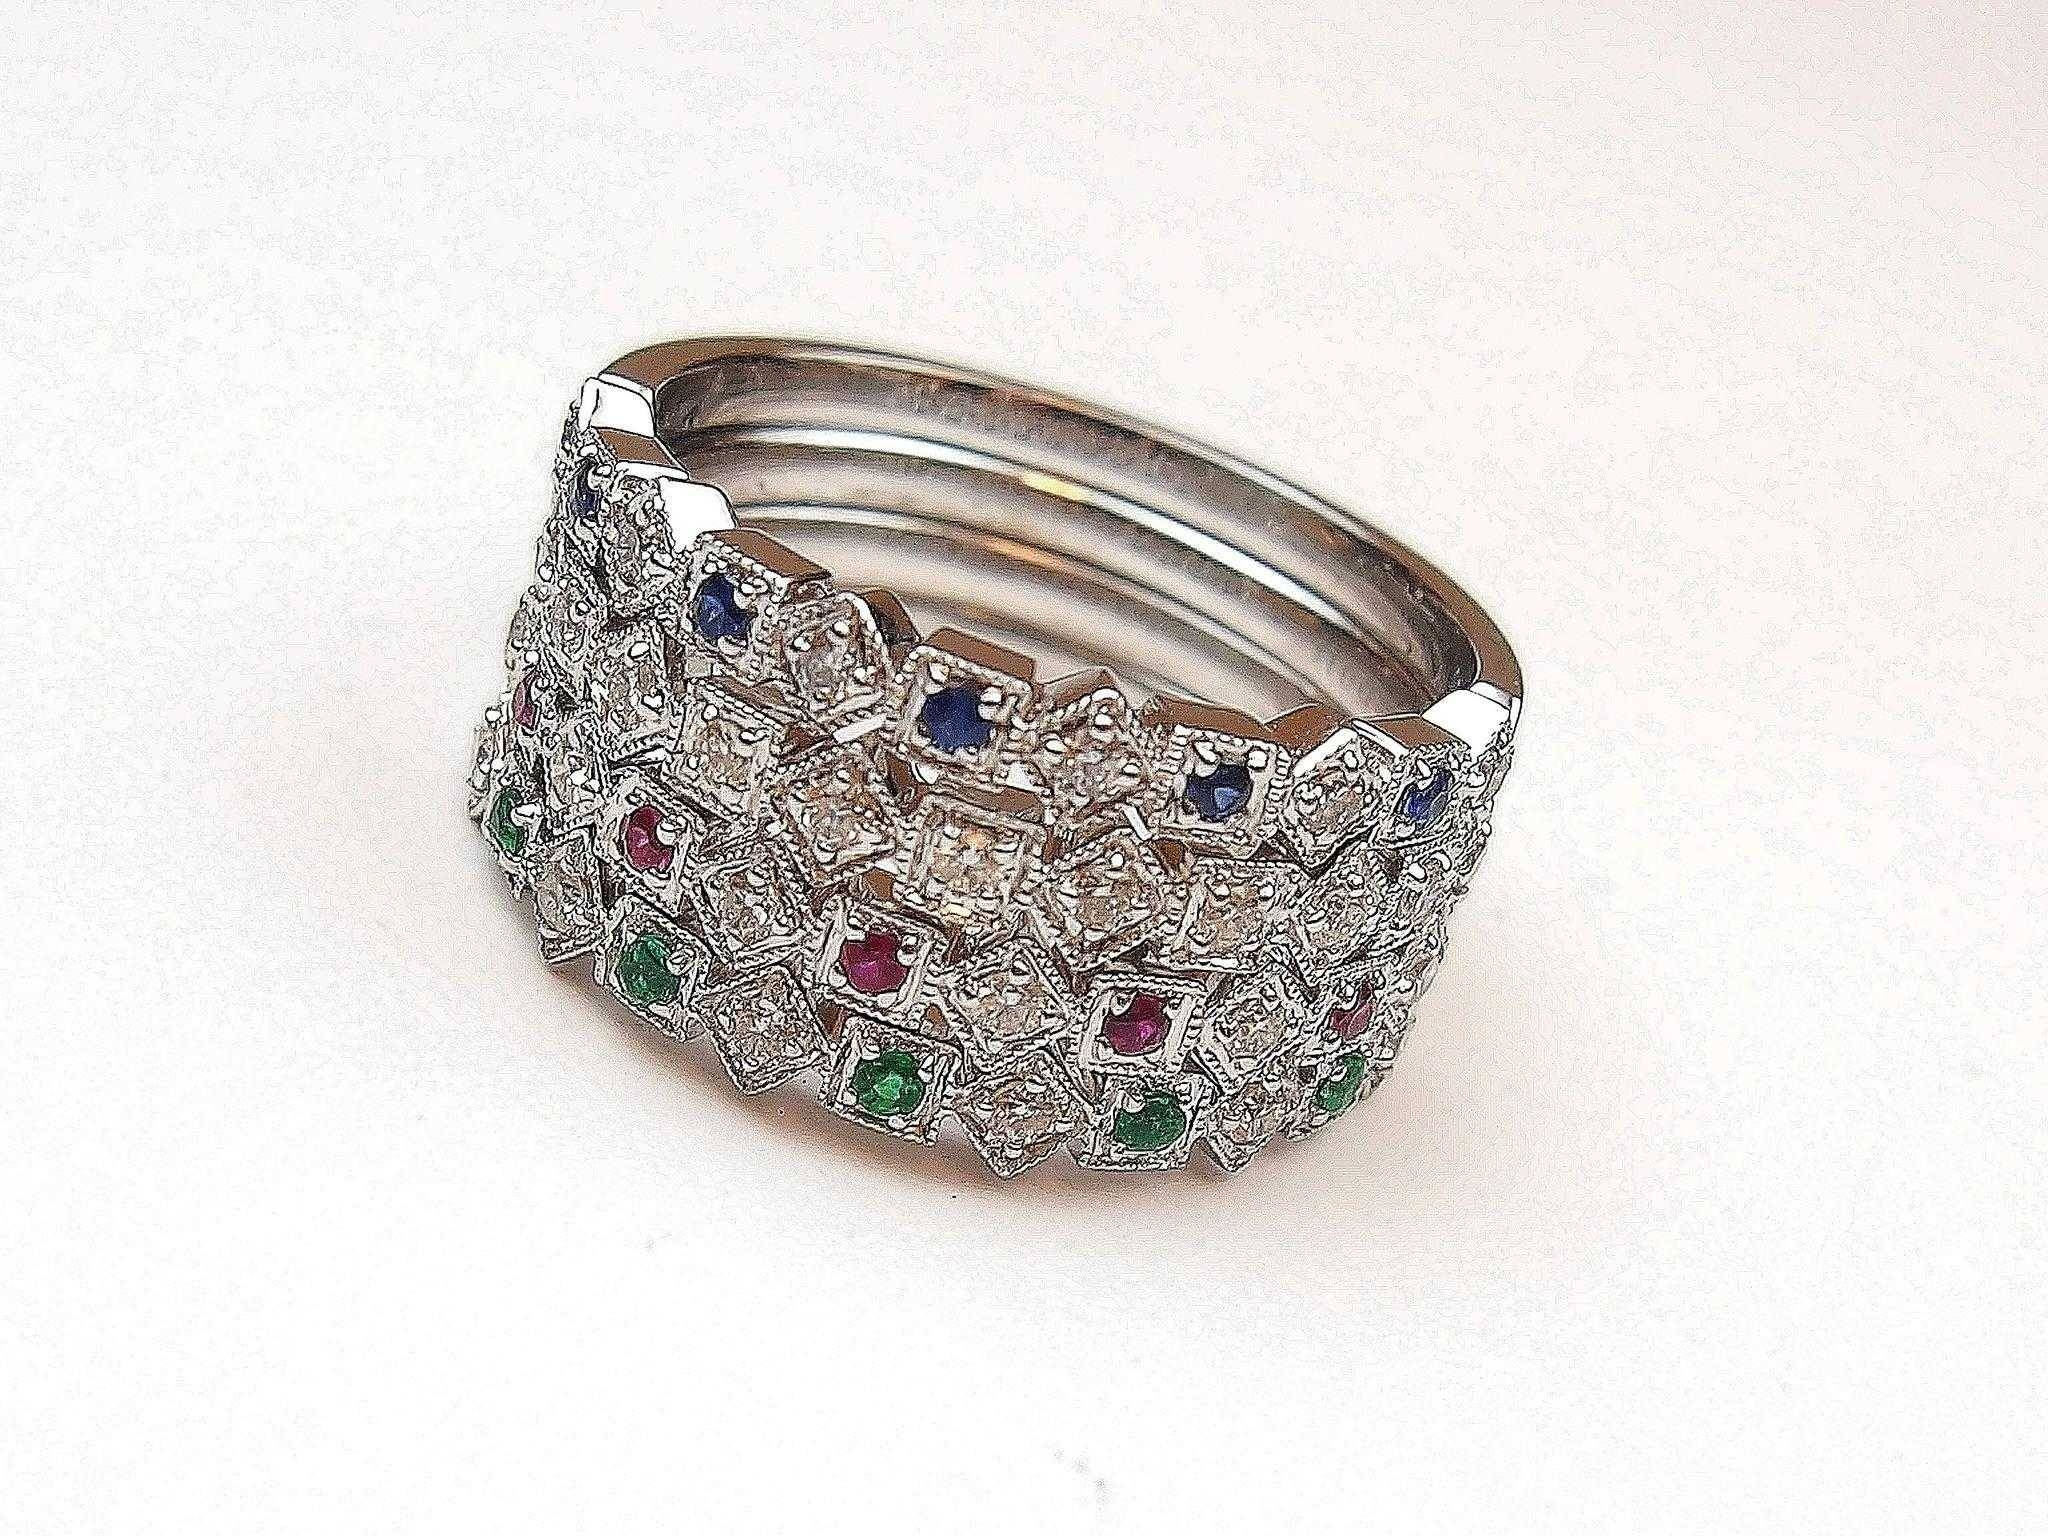 57 Ctw Diamond, Ruby, Emerald And Sapphire Stacking Rings 14K Within Emerald Sapphire Engagement Rings (Gallery 8 of 15)